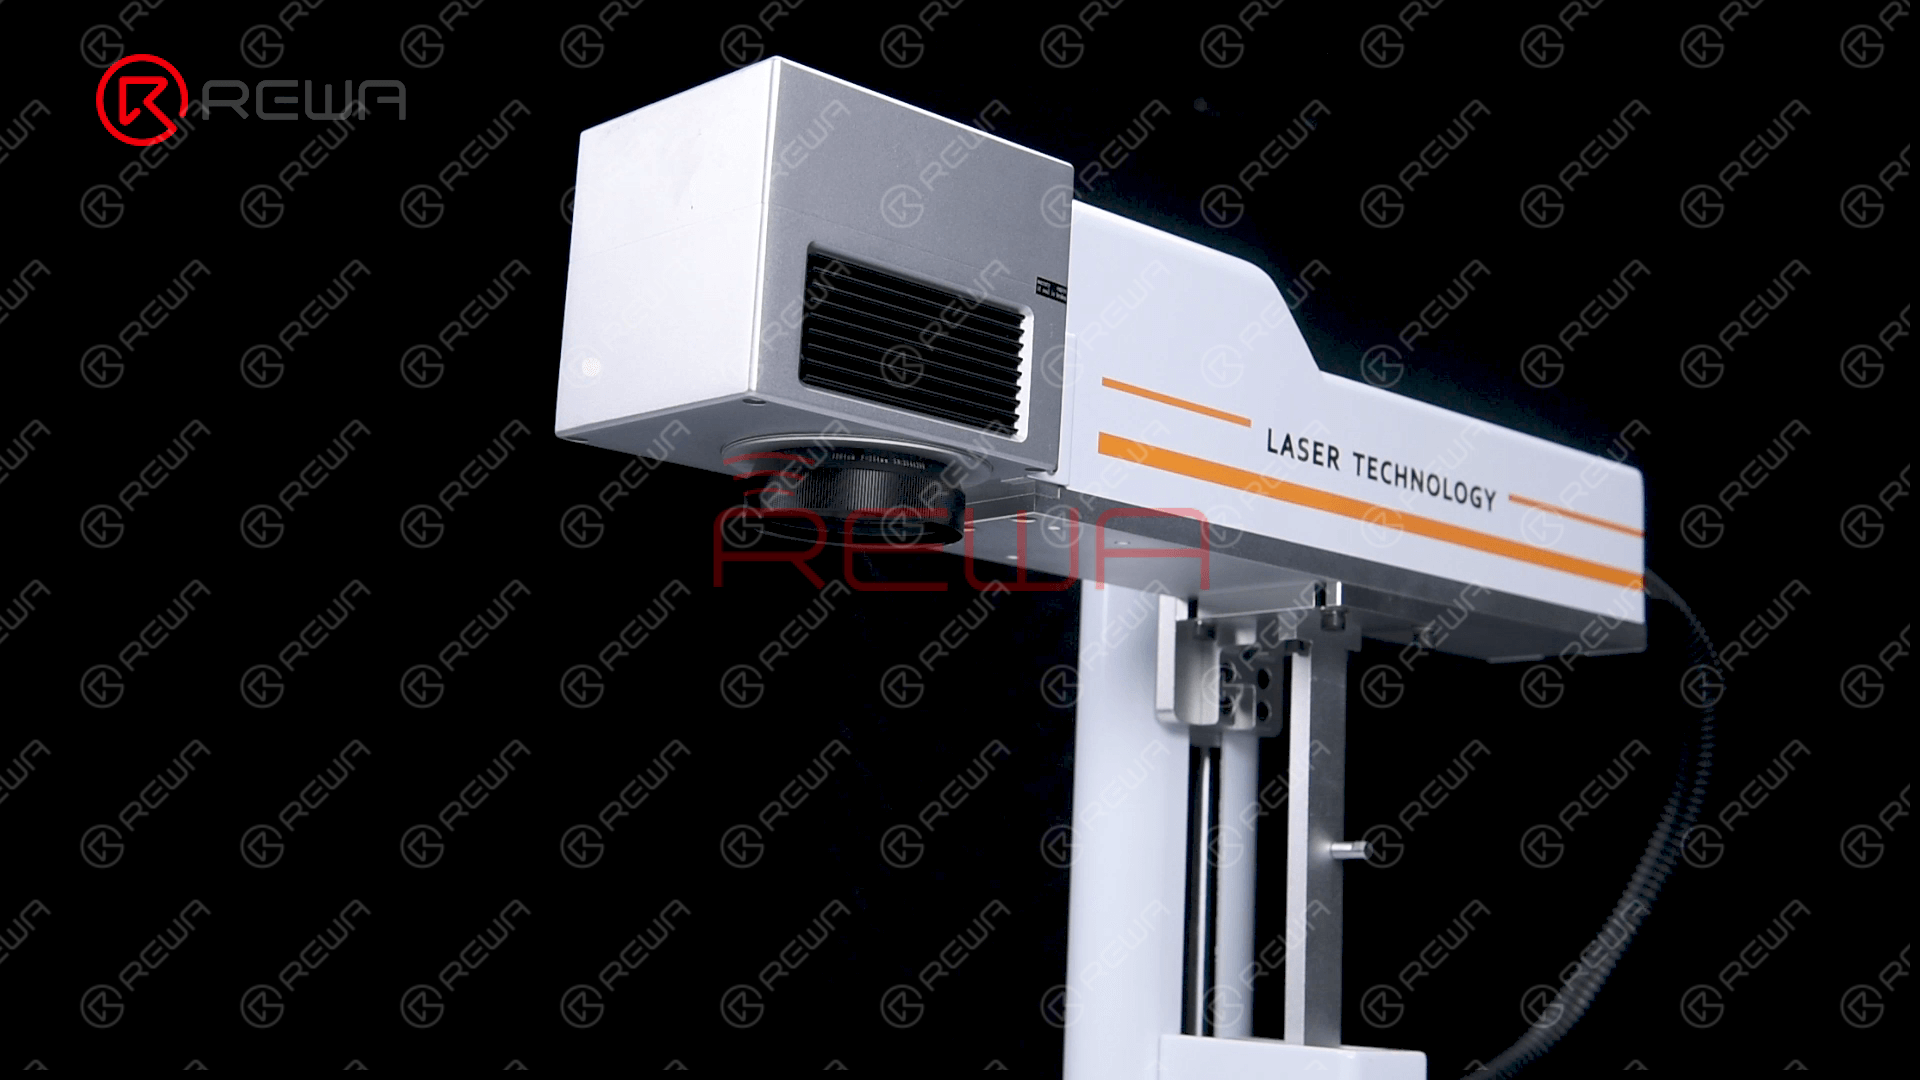 The galvanometer adopts the most advanced material. It has high precision, a long service cycle, fully automatic calibration, and stable operation.